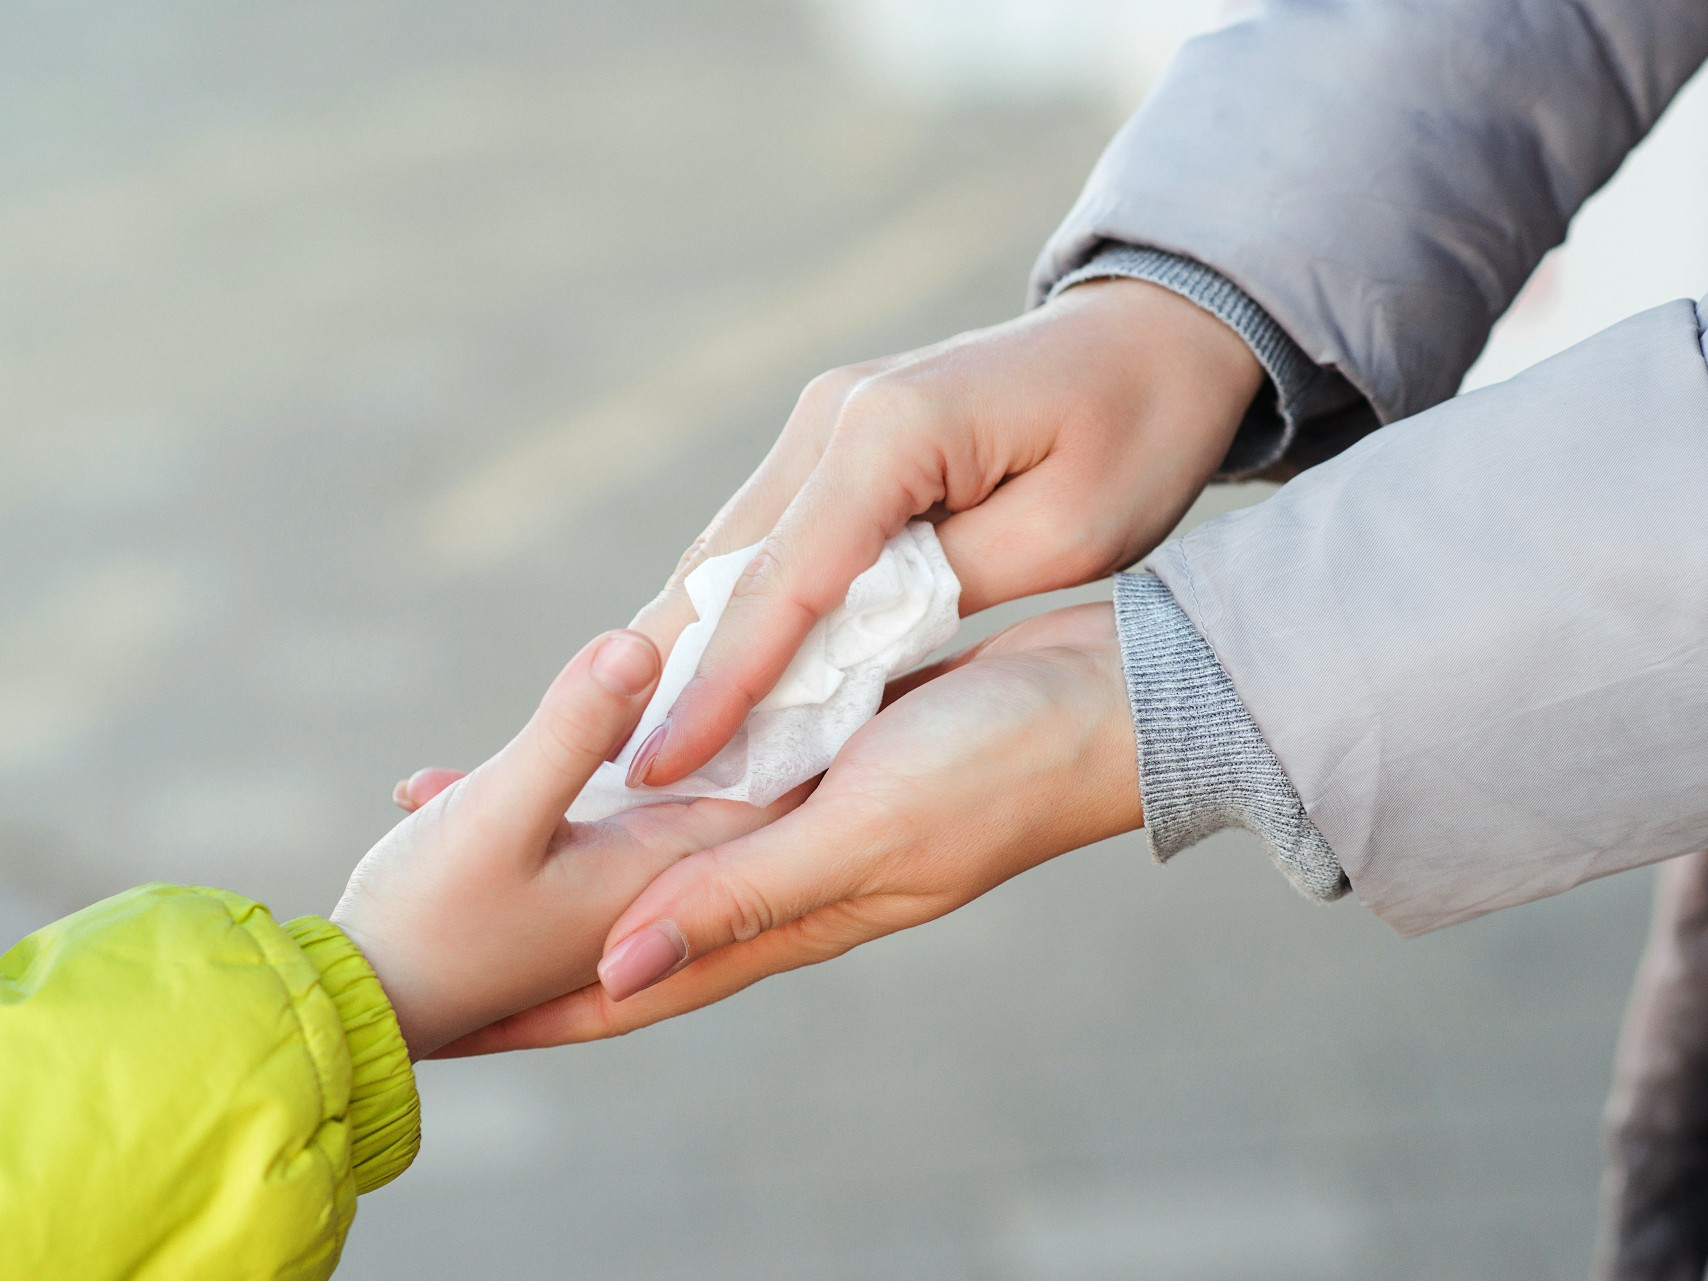 An image of a child using antibacterial wipes to represent their importance in the upcoming return to schools.